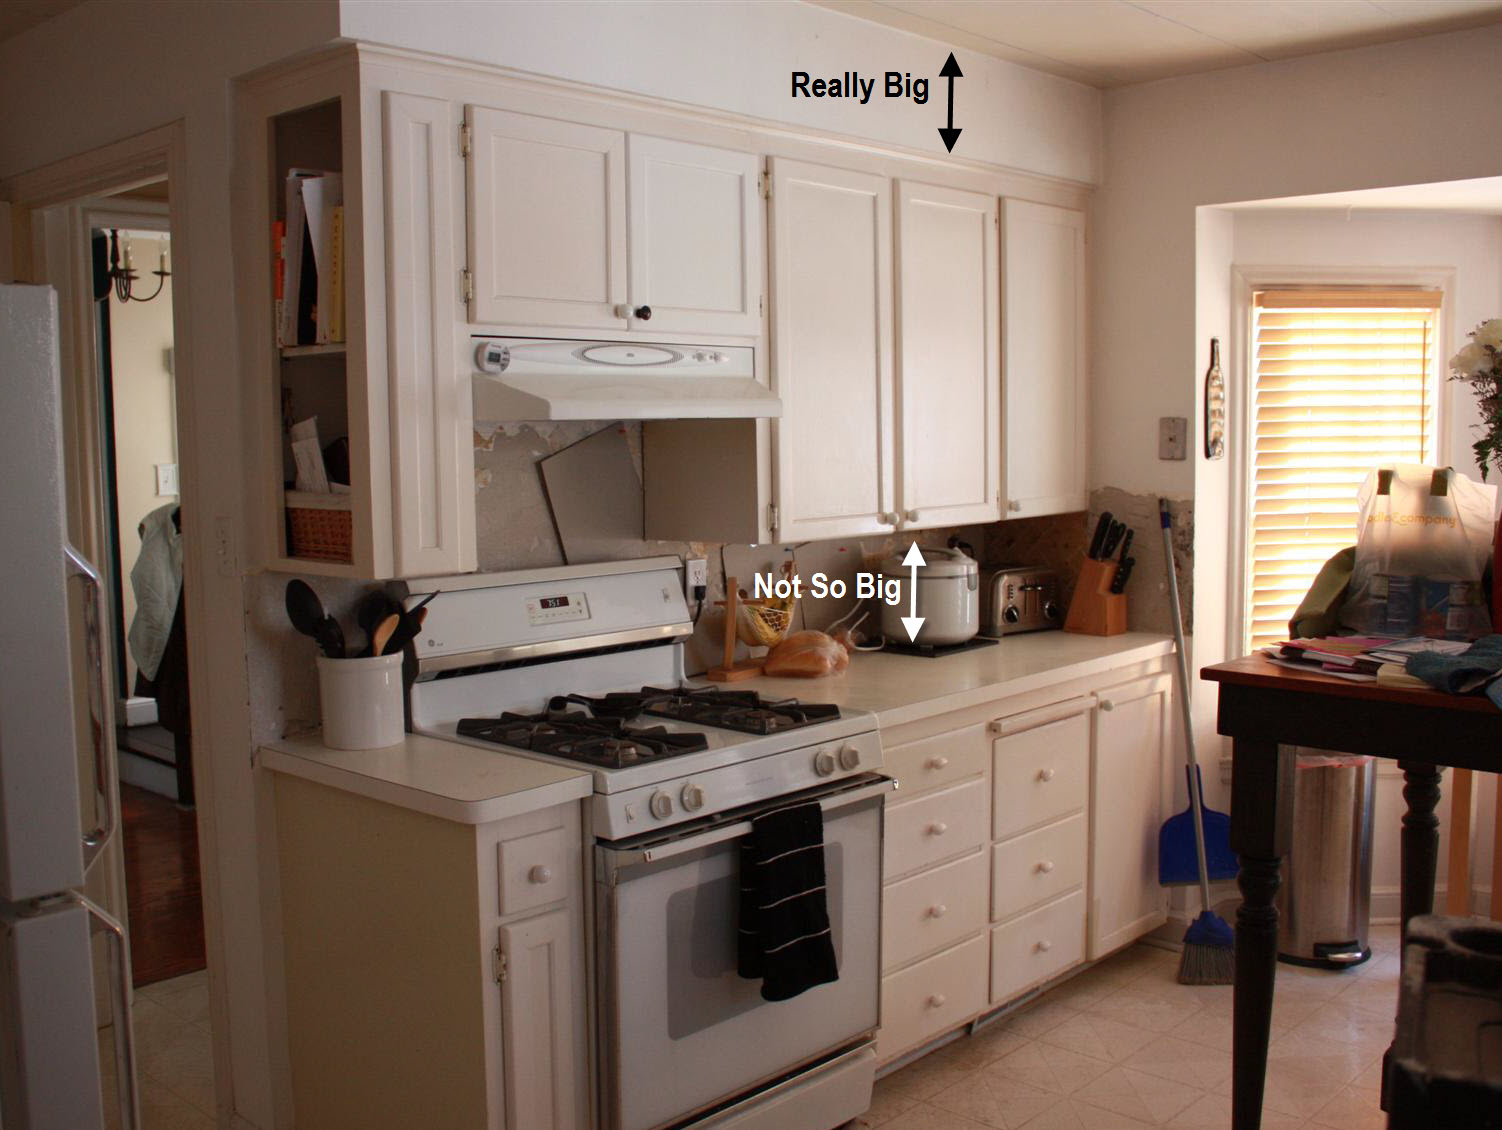 a picture of above kitchen soffit decorating ideas html with Kitchen Destruction on Above Cabi s besides Index together with Extending Kitchen Cabi s To Ceiling additionally How To Decorate Space Above Cabi s likewise Acik Mutfak 14.